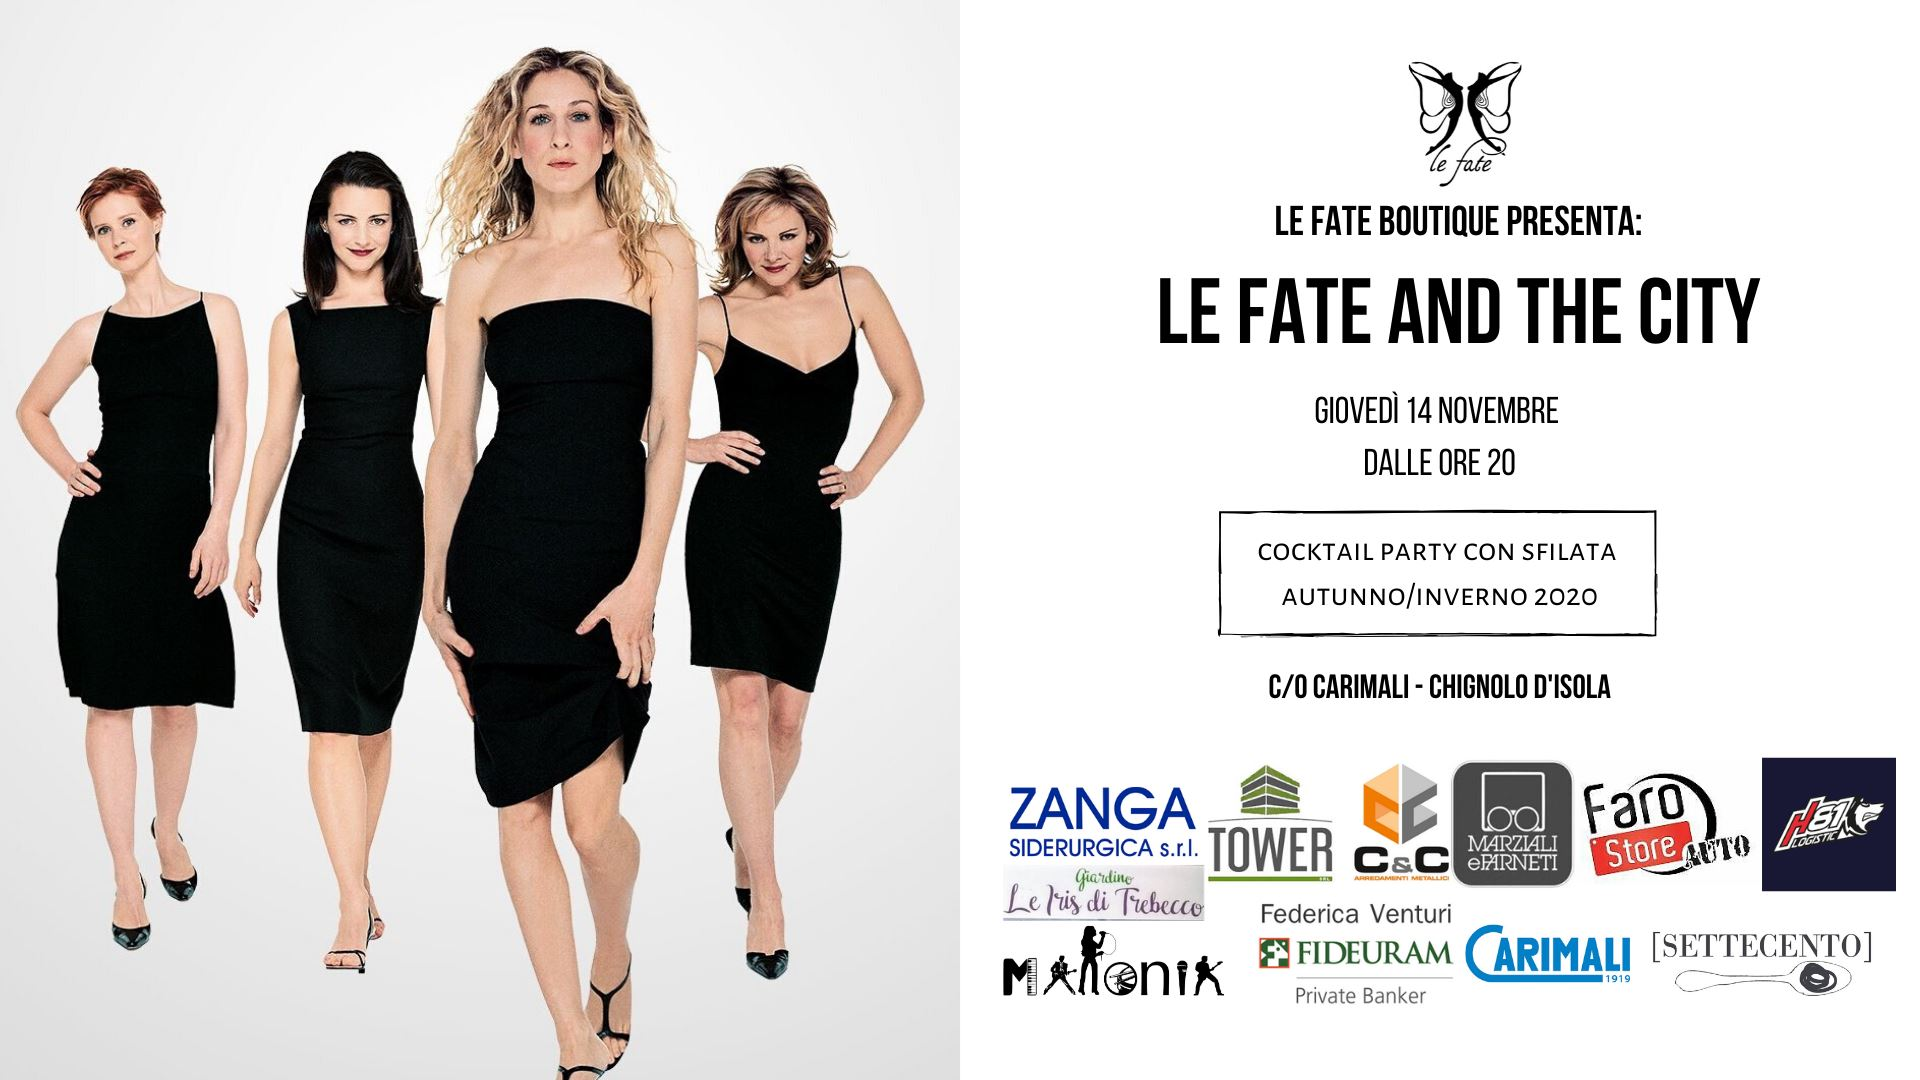 Le fate and the city sfilata novembre